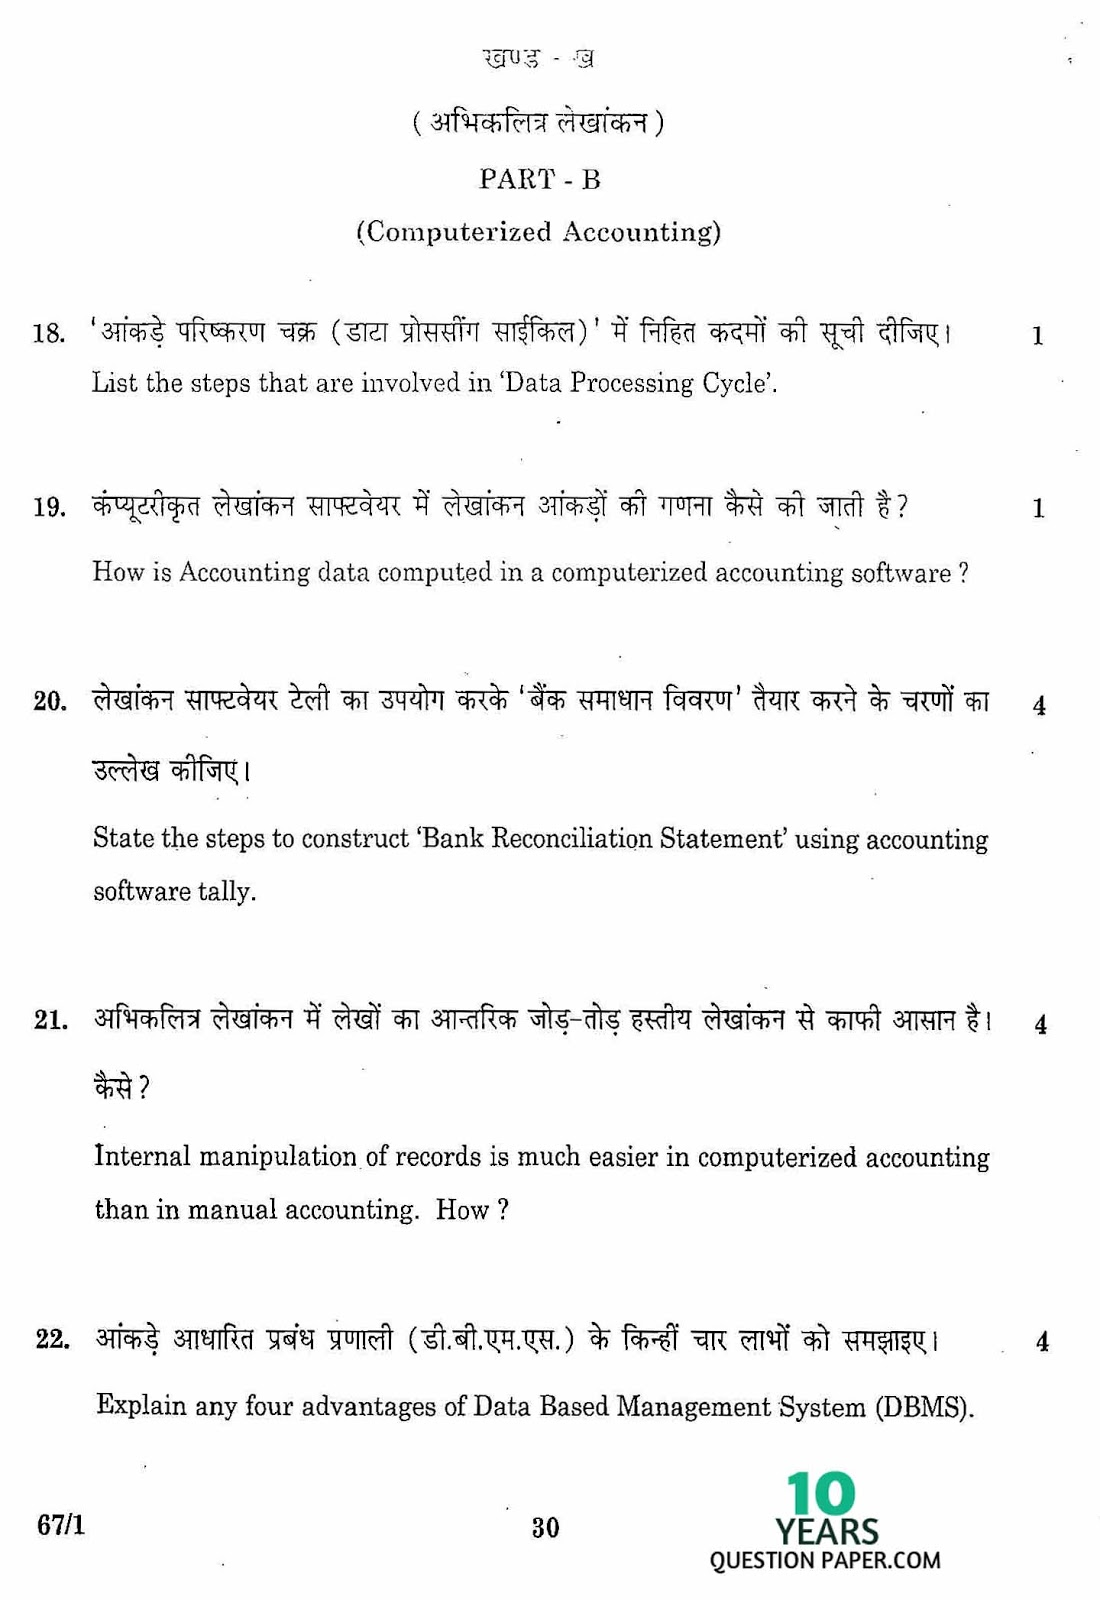 cbse class 12th 2016 Accountancy question paper